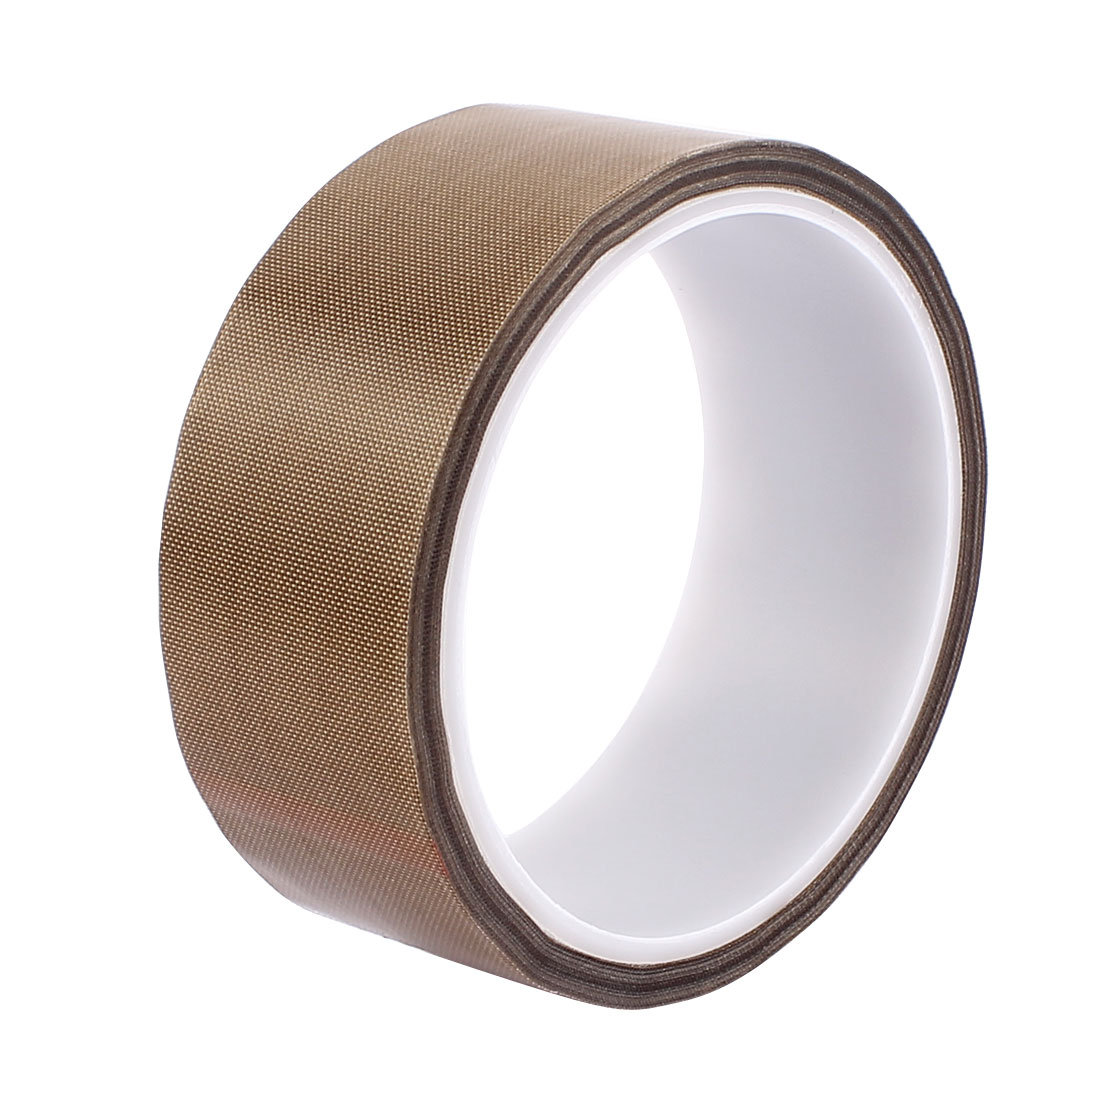 30mm Width 10M Long 0.13mm Thickness Nonstick High Temperature PTFE Adhesive Tape